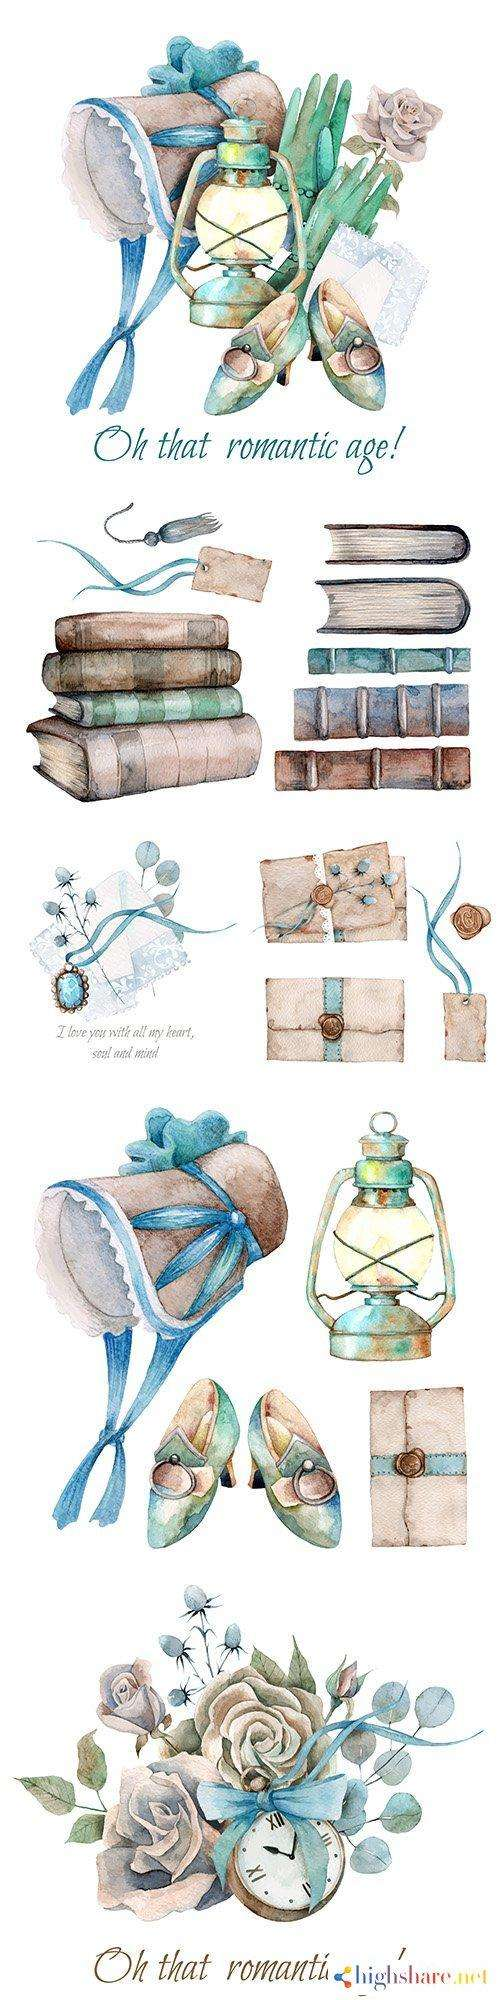 watercolor composition romantic elements and decorative colors 5f4e2e675ad57 - Watercolor composition romantic elements and decorative colors